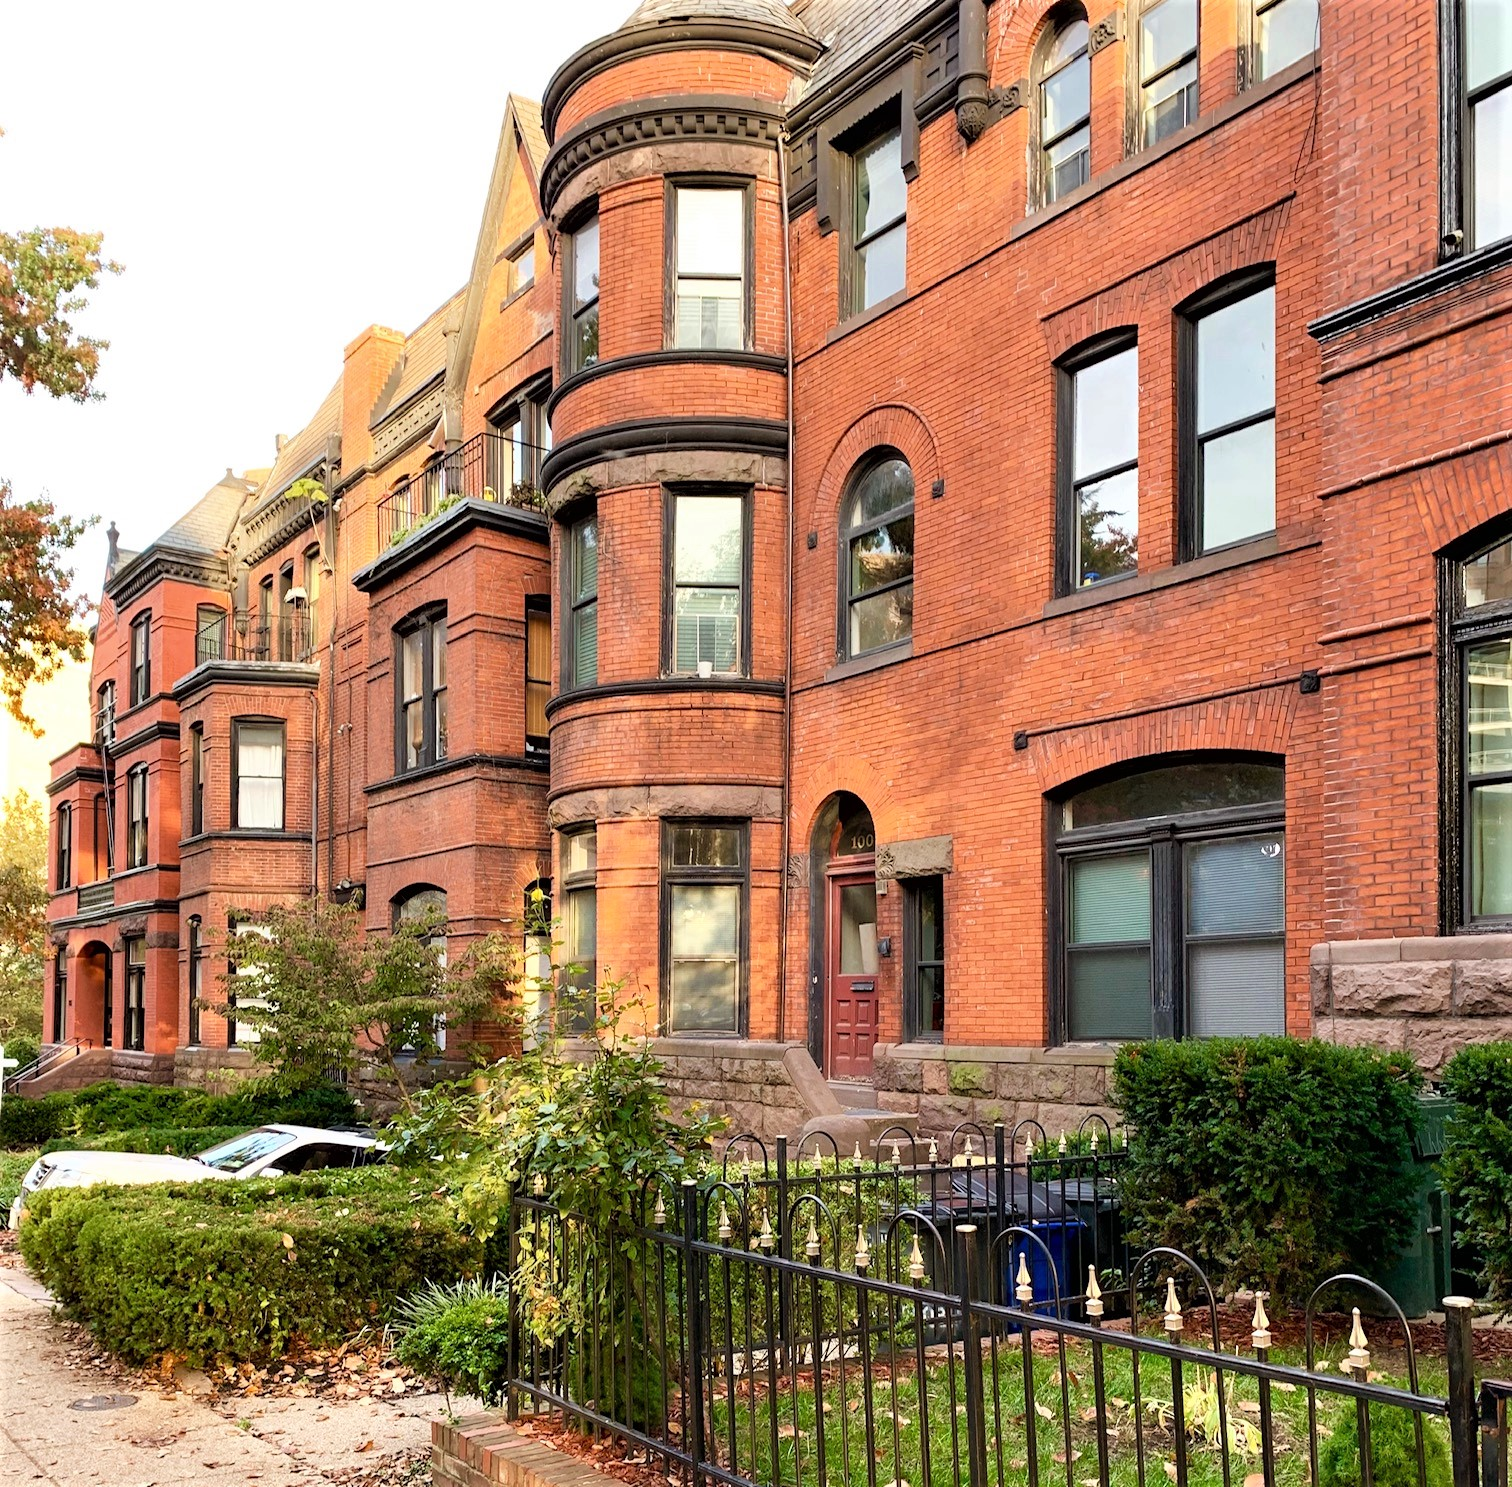 Washington, DC Townhomes For Sale. West End. Artyom Shmatko Luxury Real Estate Agent